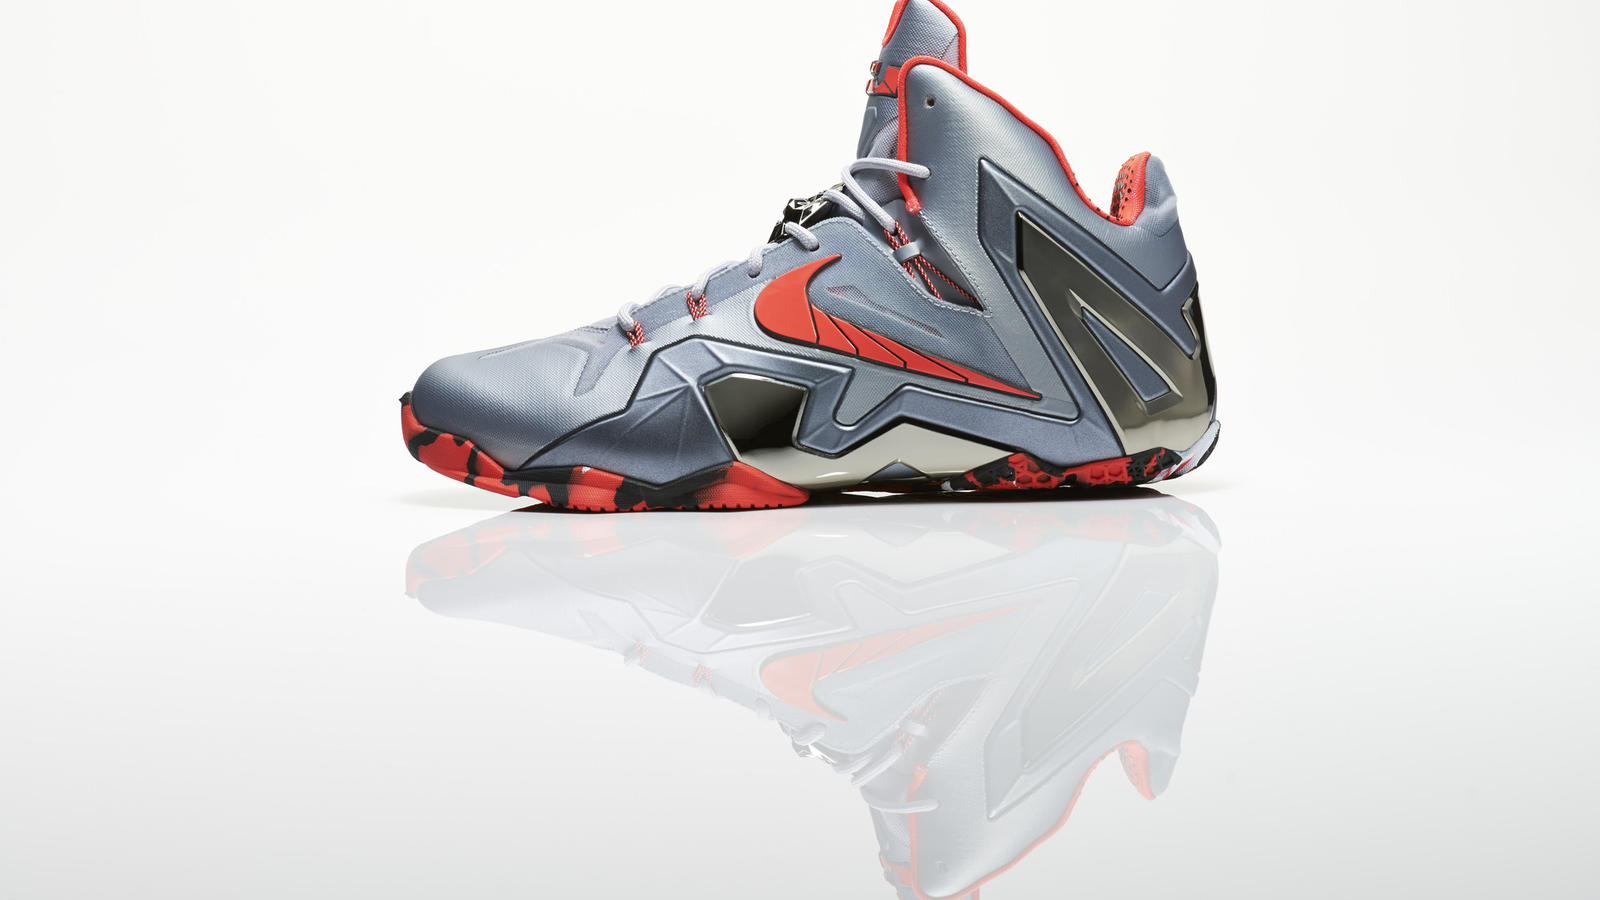 su14_bb_lebron11_elite_642846_001_return_profile_16832